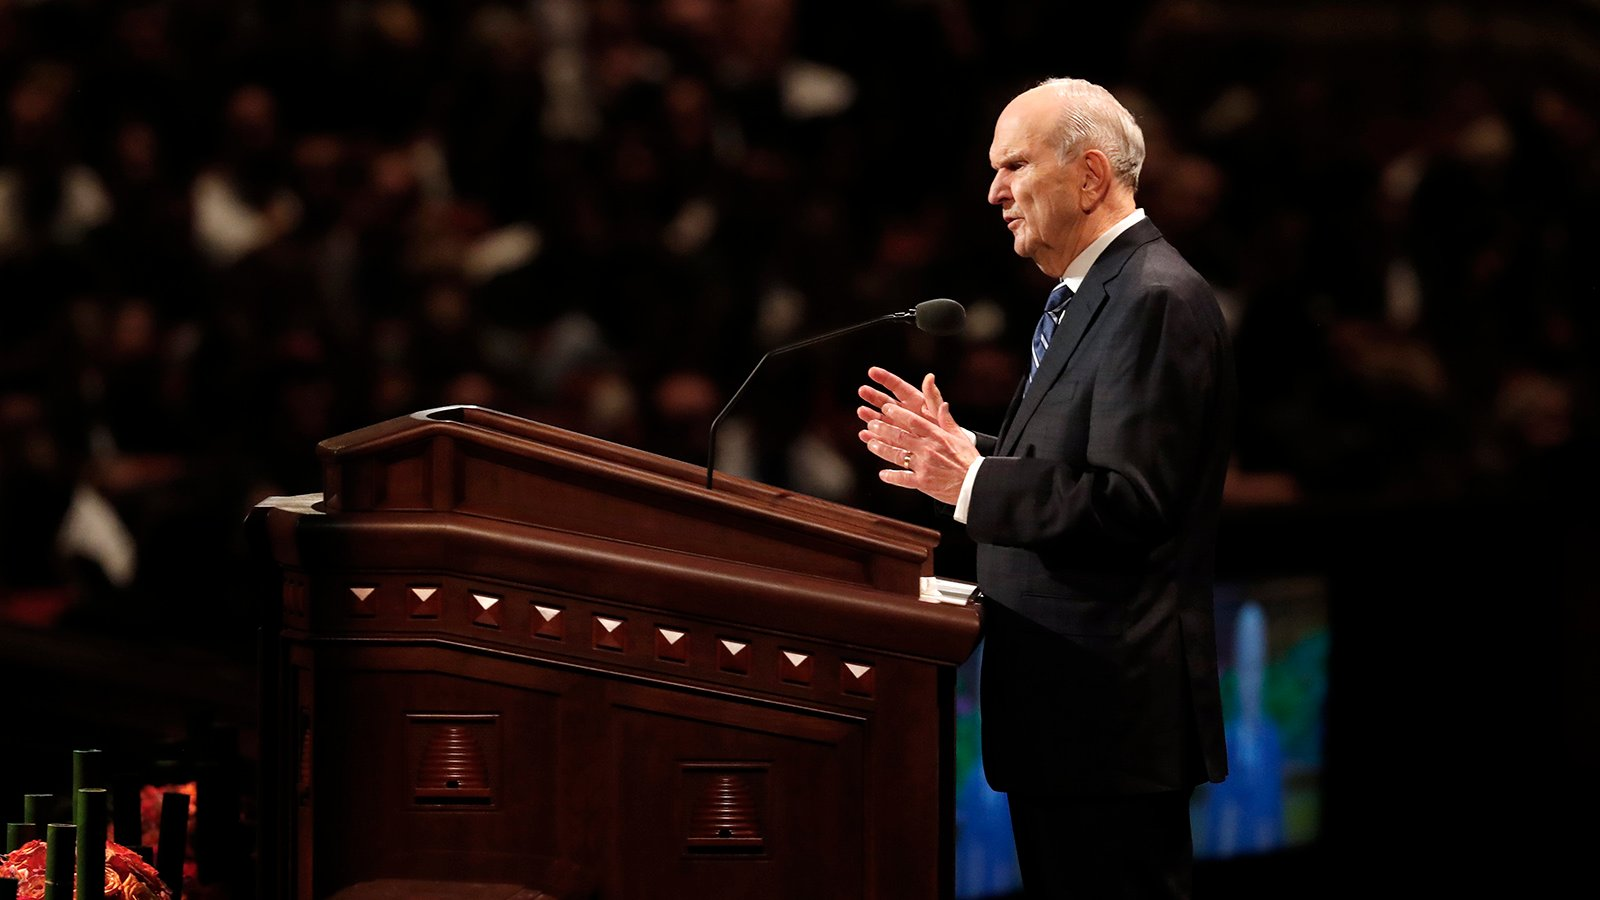 Don T Call Mormons Mormons And Do Try The Gospel At Home 9 Key Takeaways From General Conference